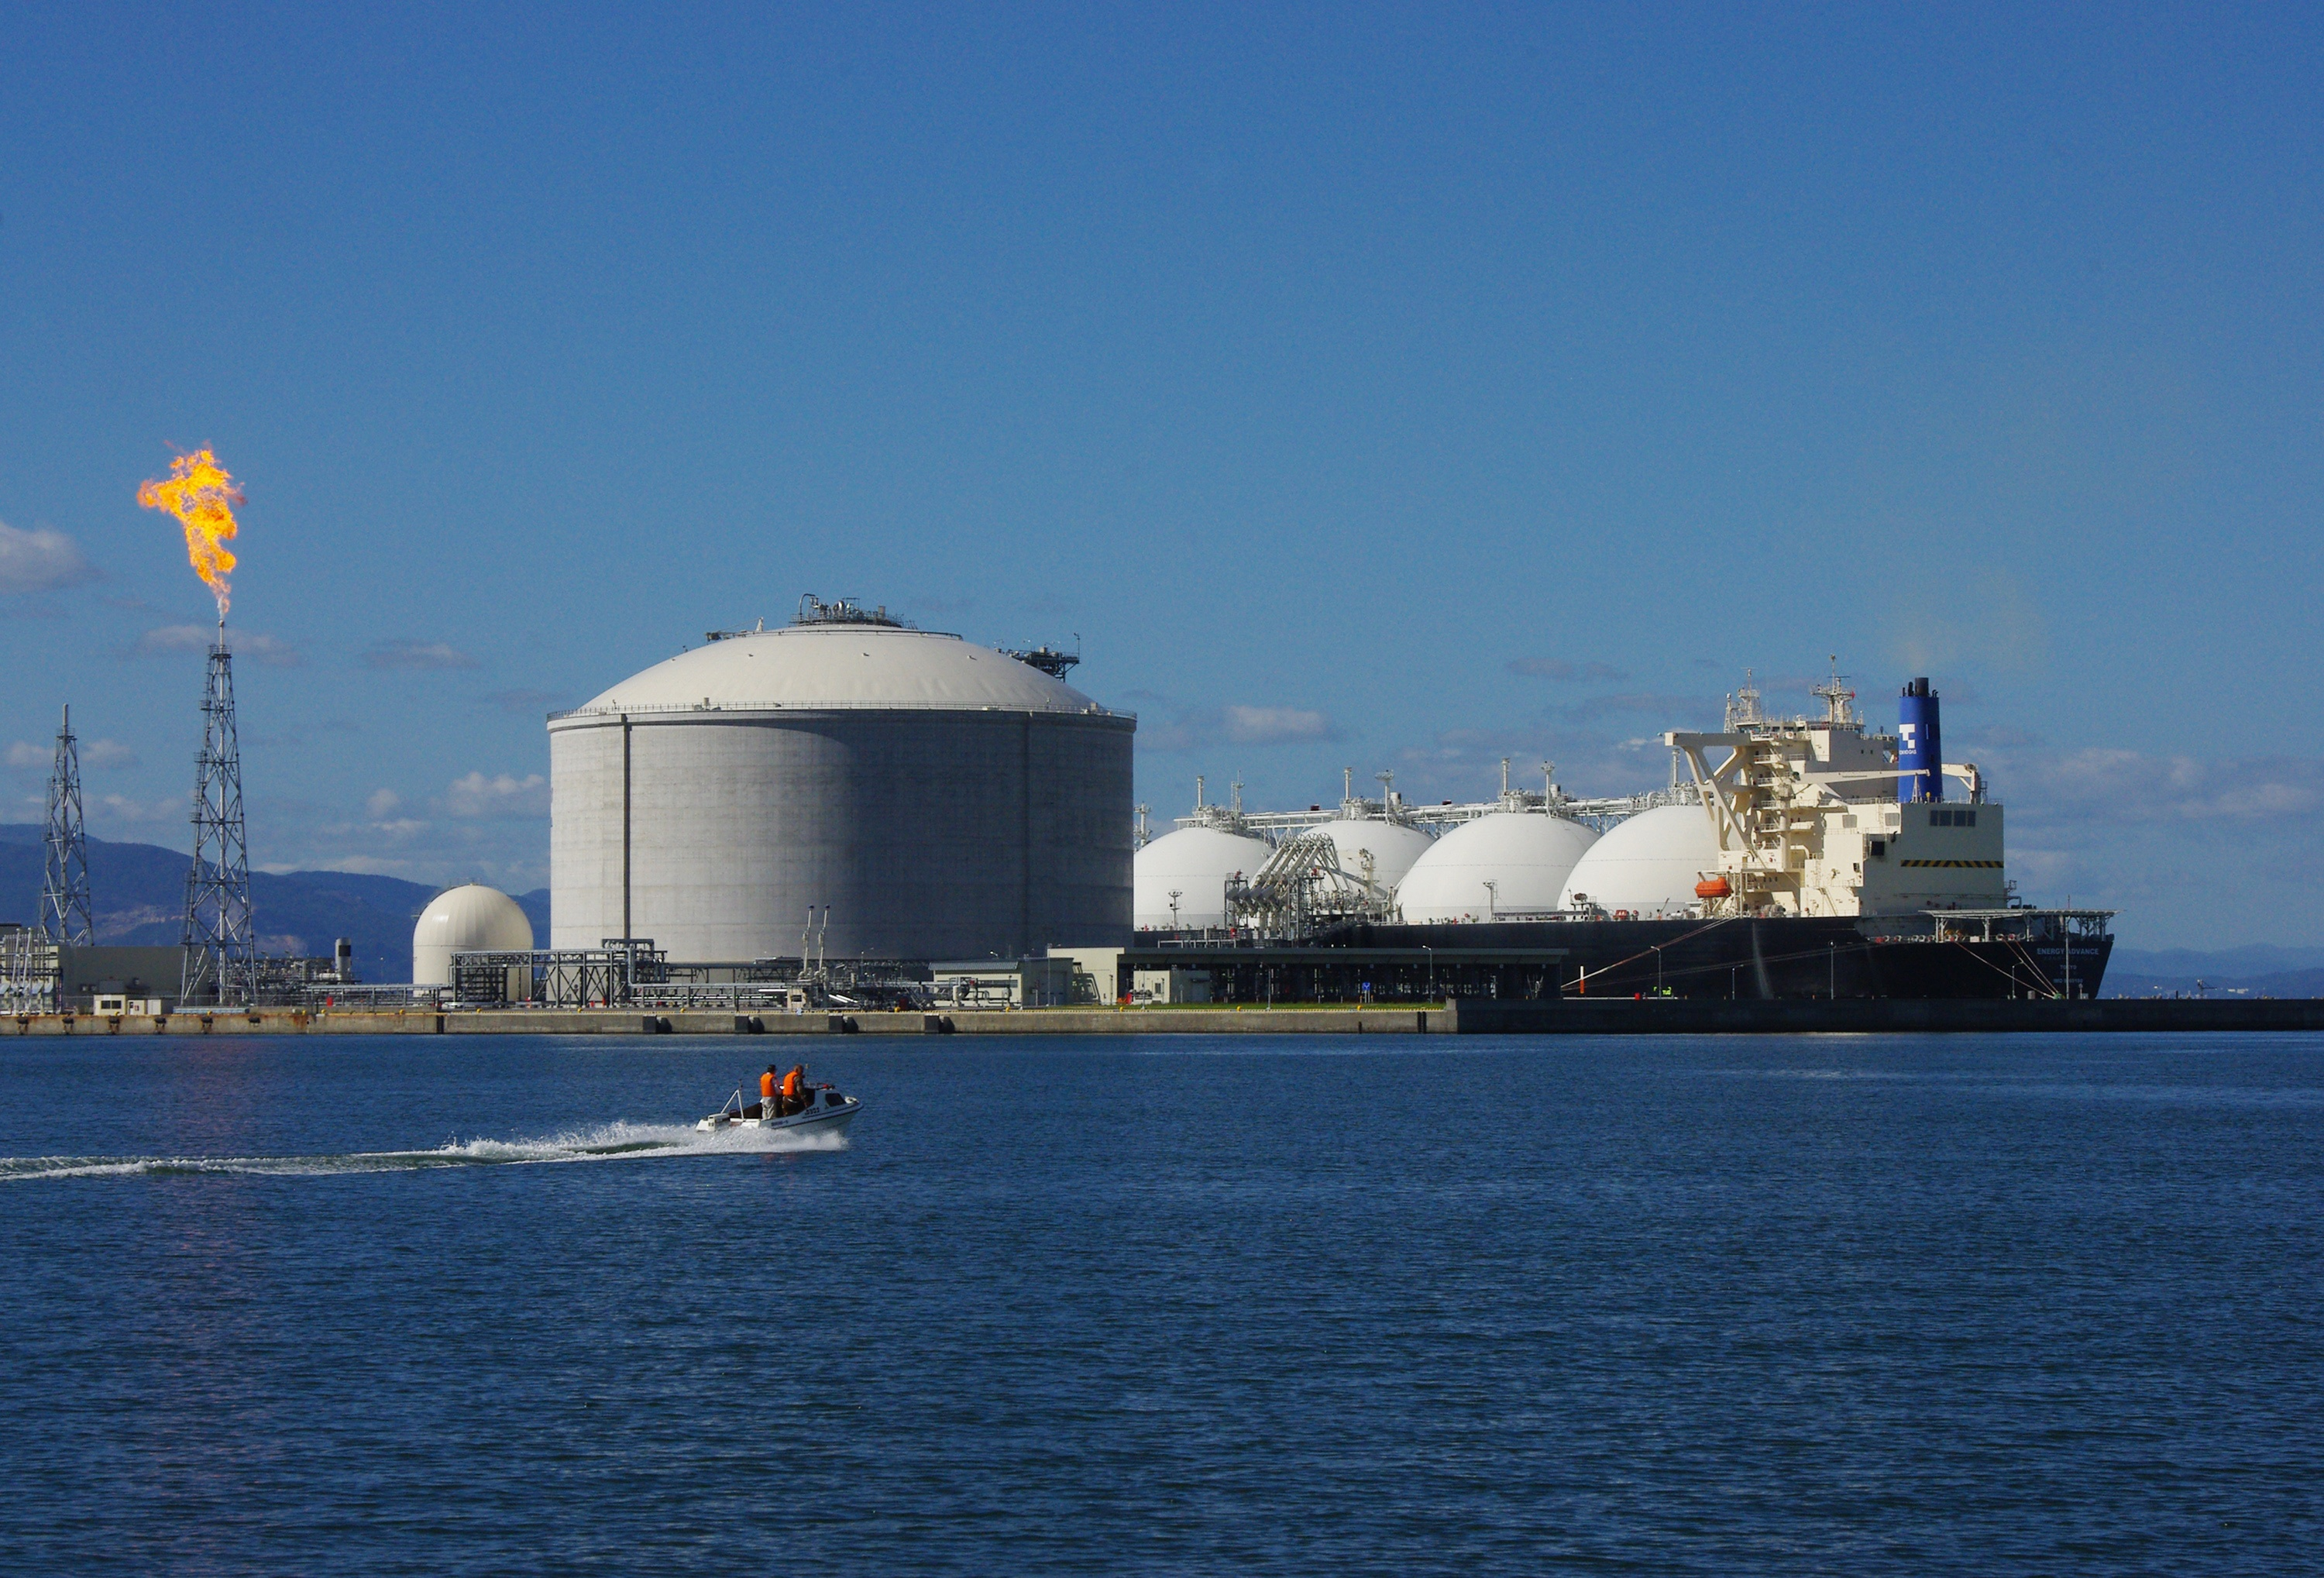 What Is LNG? - Marine industry